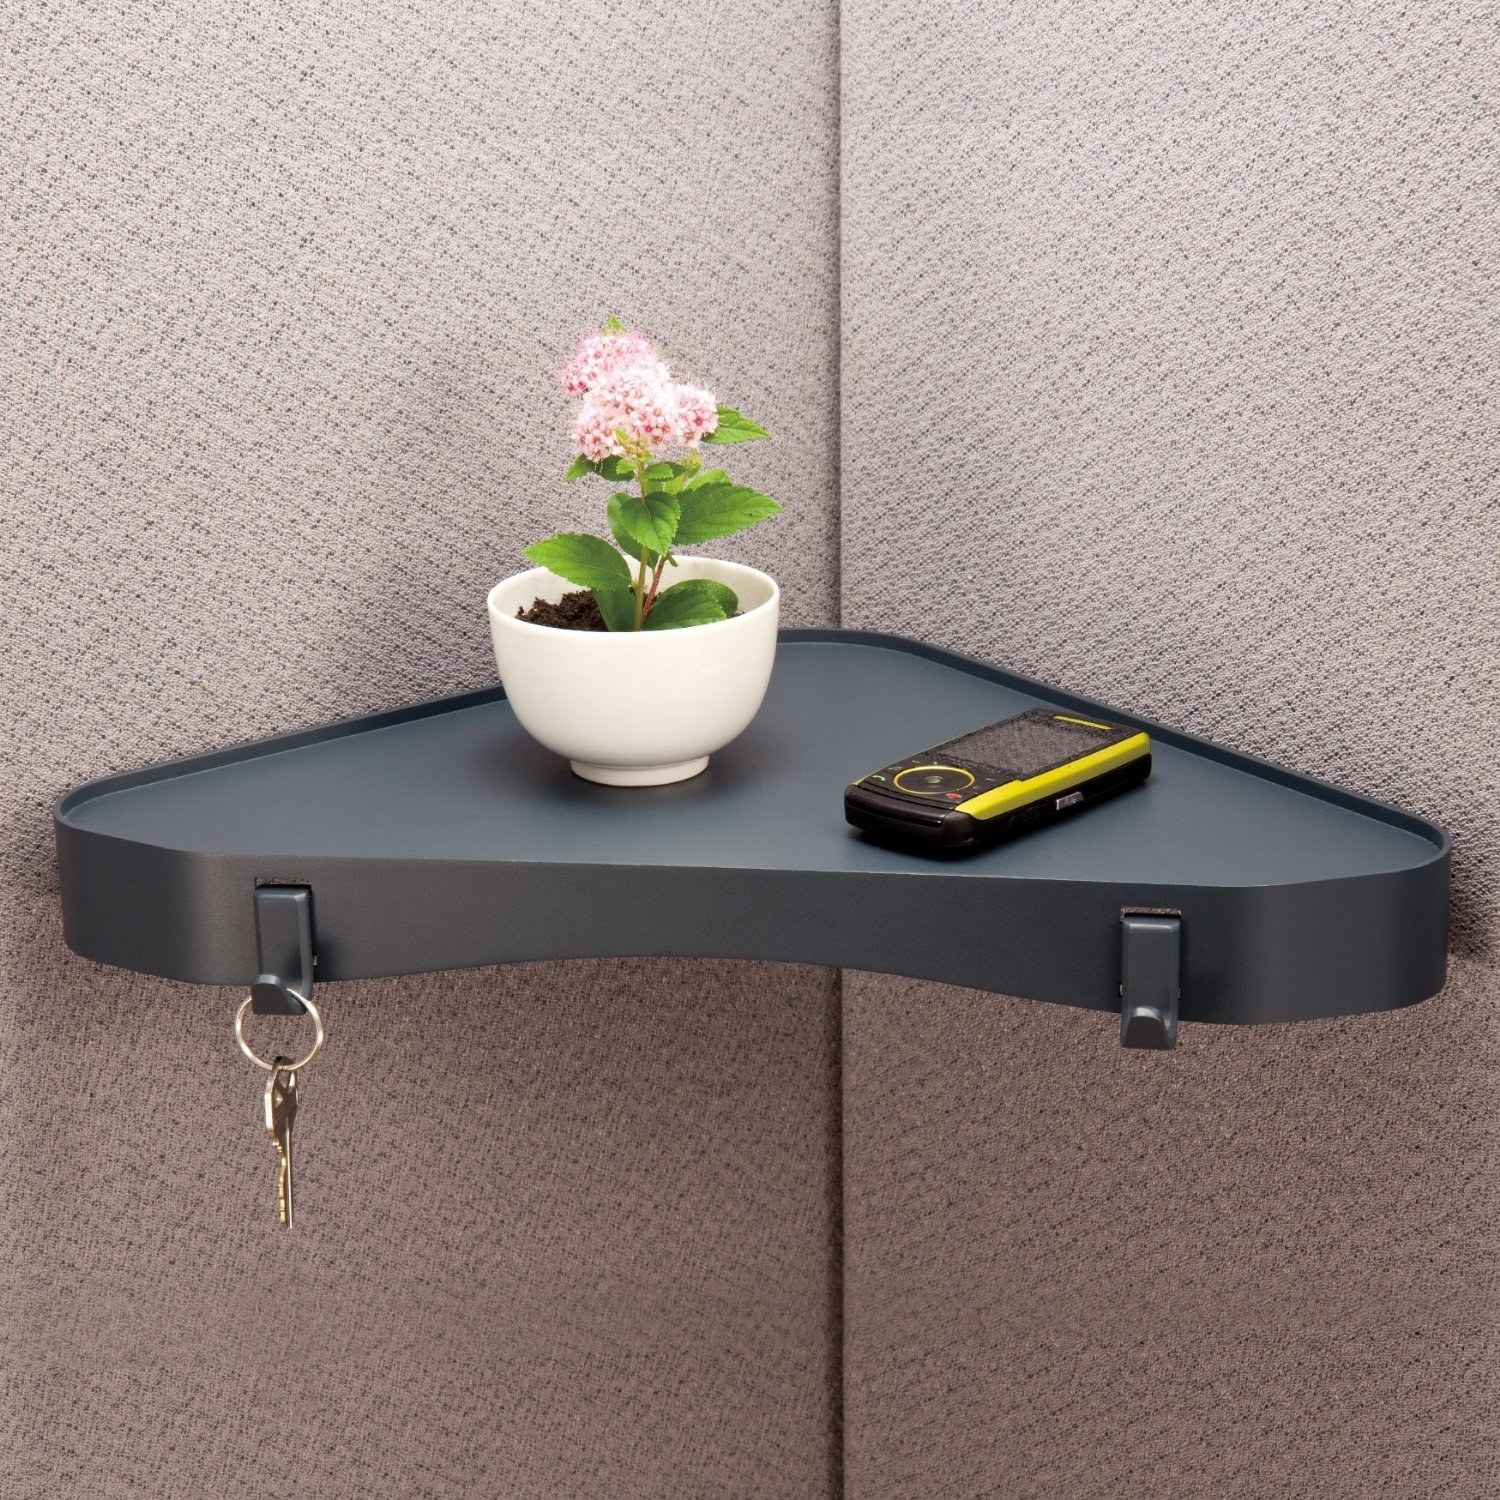 Increase your space by adding a corner shelf in your cubicle. : cubicle tent - memphite.com